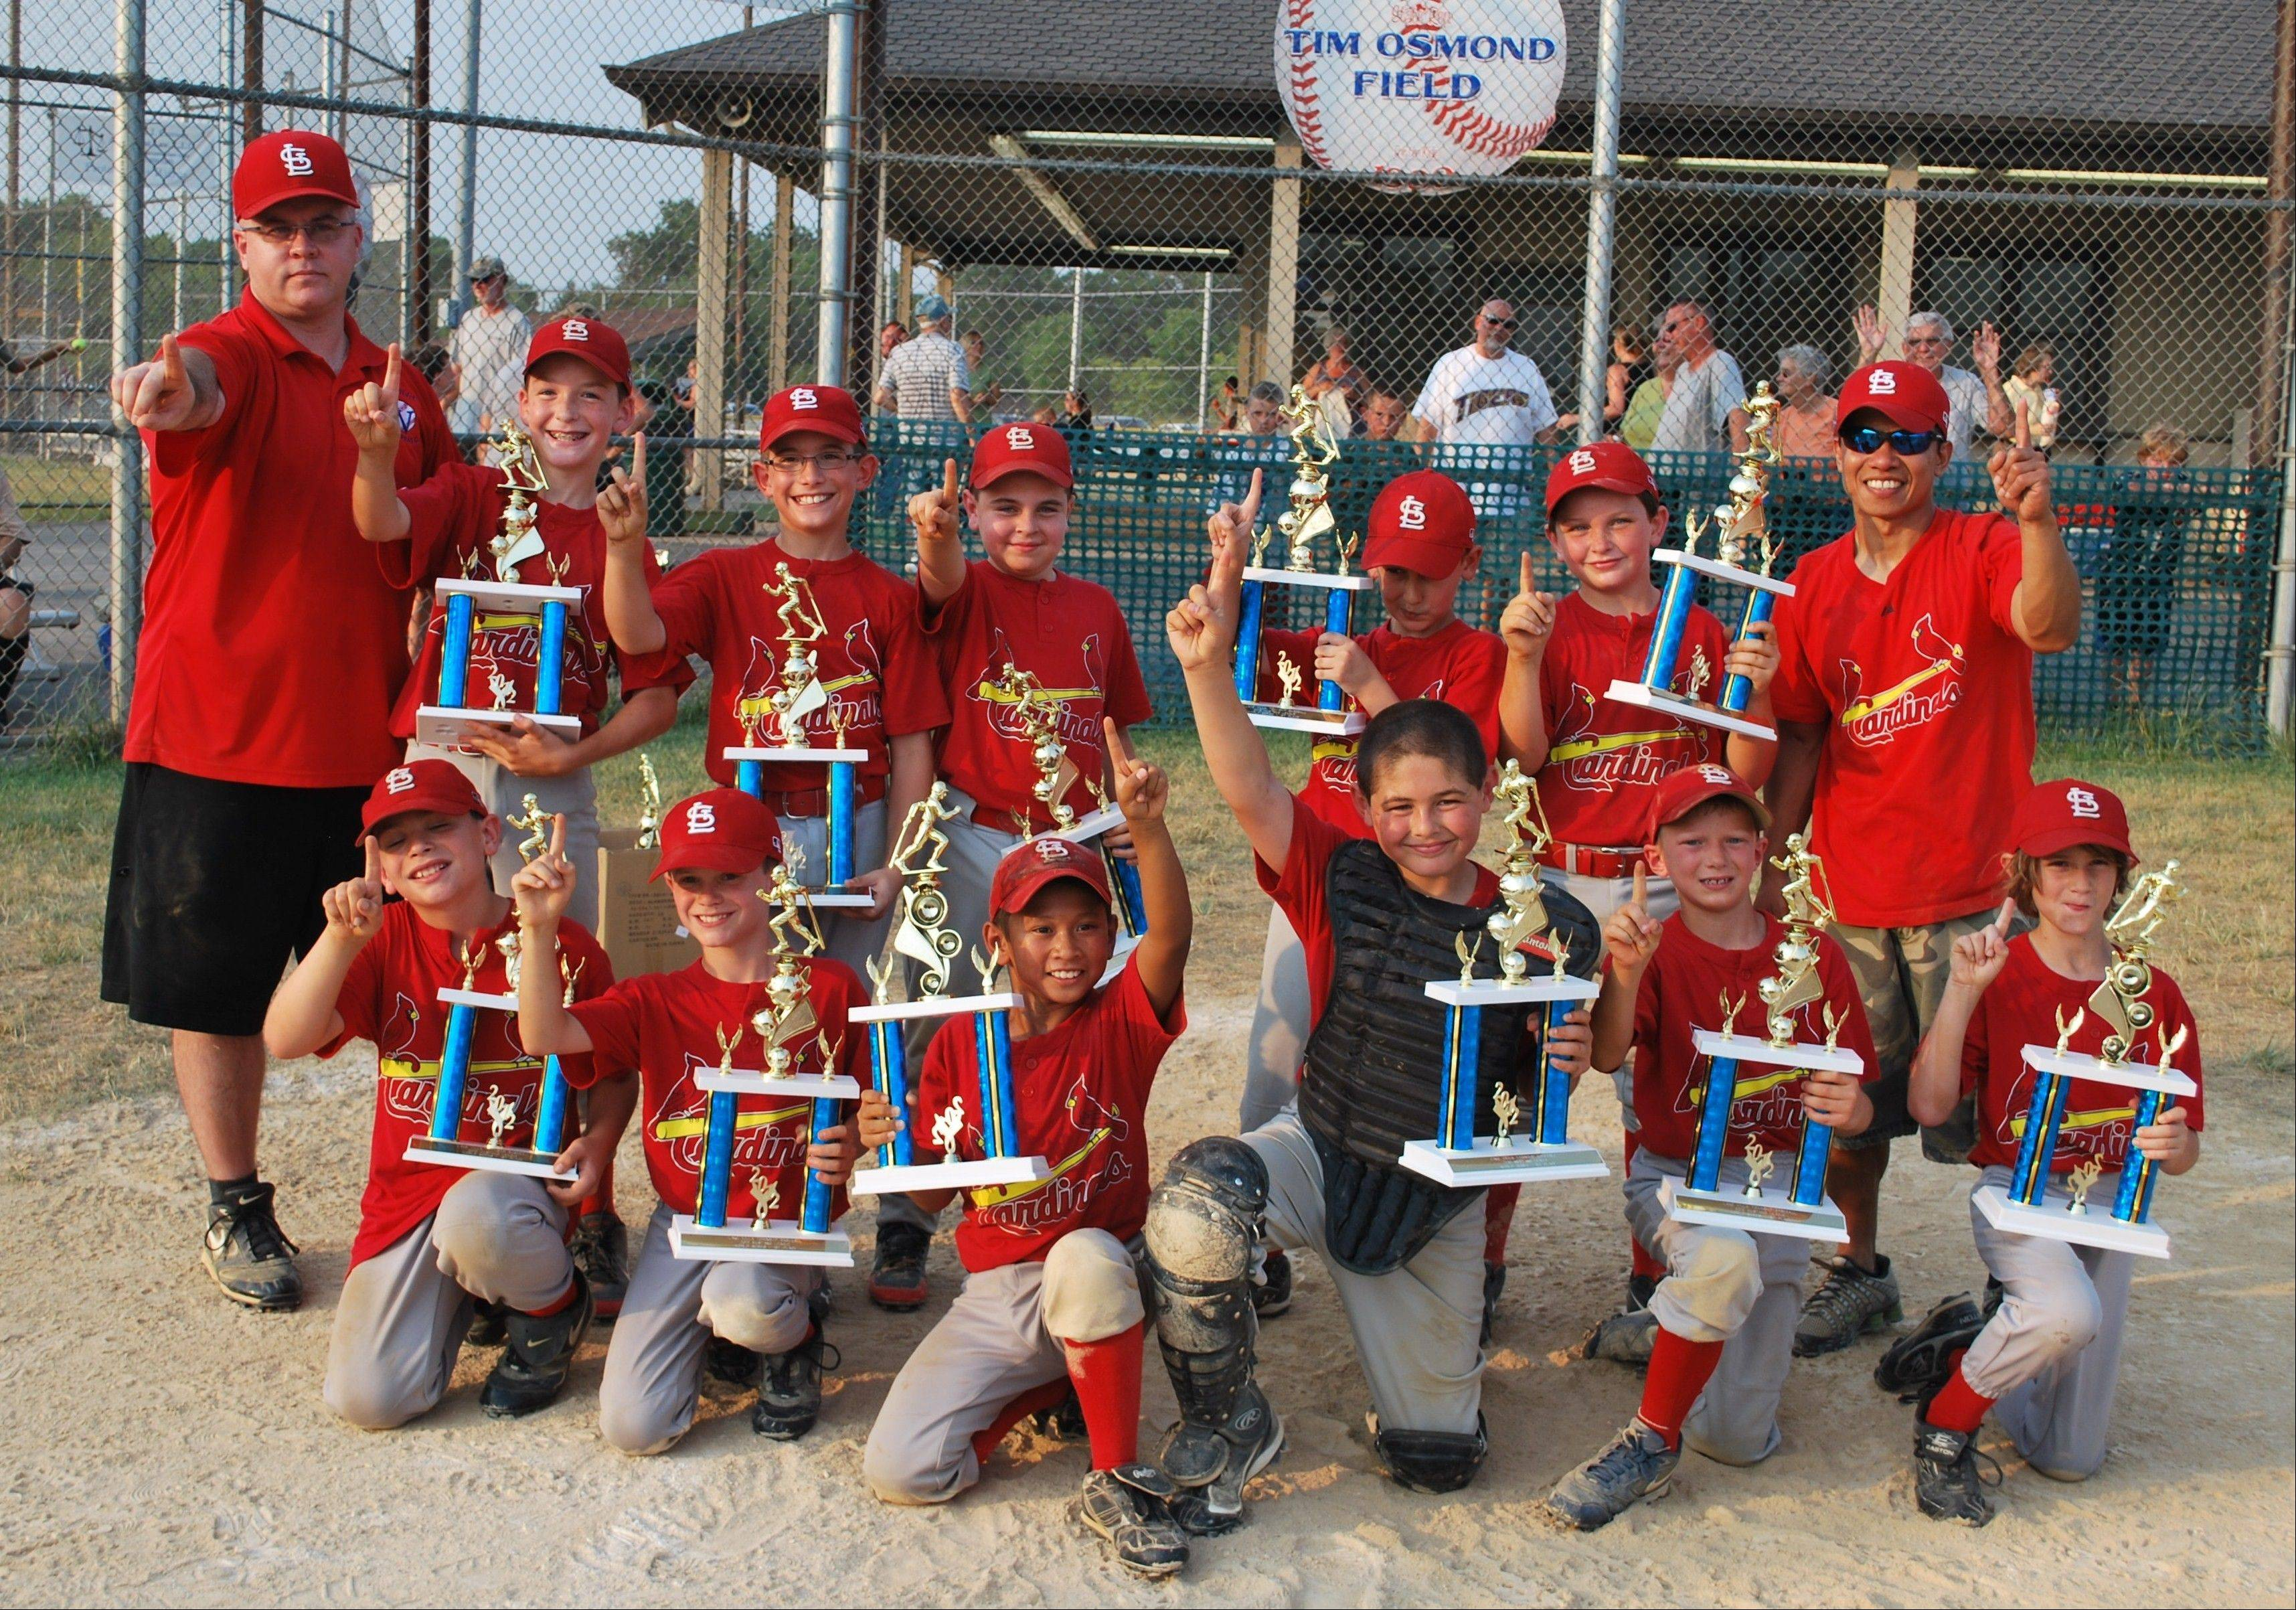 The Lake Villa Township Baseball League Mustang Champions, the Cardinals, from left, back row: coach Mark Zaba, Tyler Donovan, Logan Zielinski, Garrett Zaba, Matthew Fleming, Jimmy Klem and coach Joe Meriel; front row: Aidan Blashe, Sam Inmon, Ryne Meriel, Jake Black-Mishaan, Tyler Bringer and Justin Salinger; not pictured: Evan Zeivel.